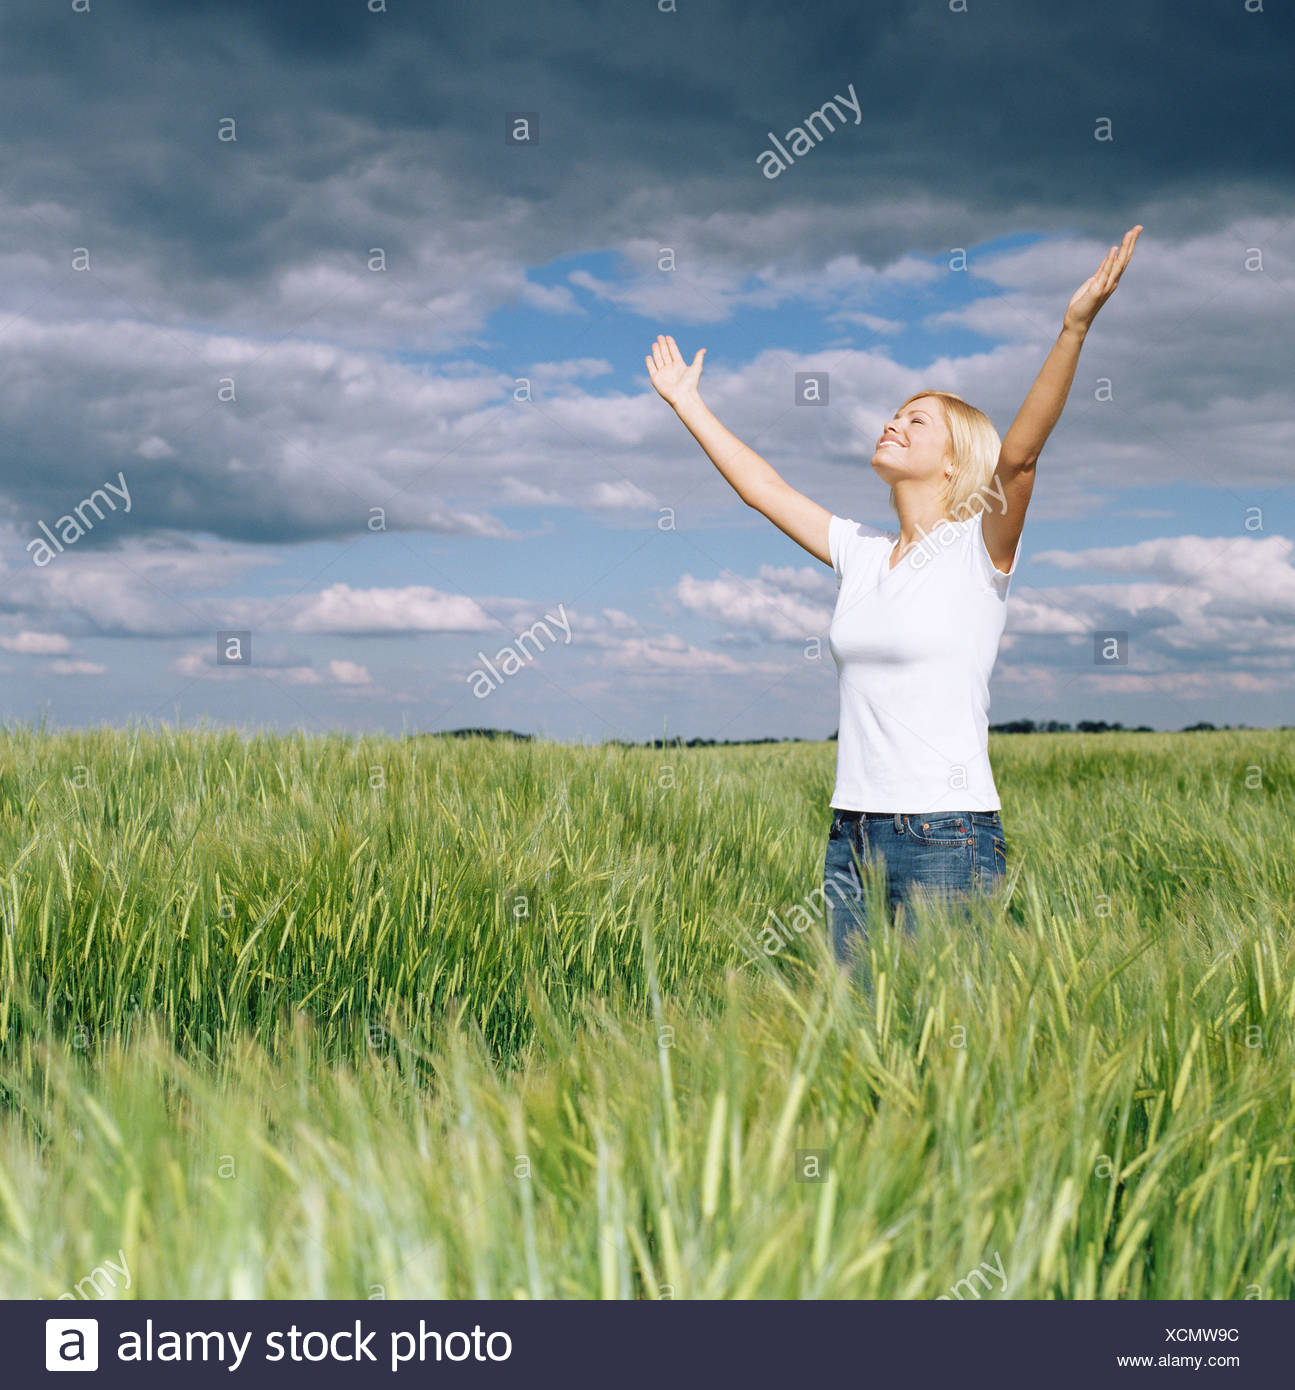 Woman with open arms in field Stock Photo